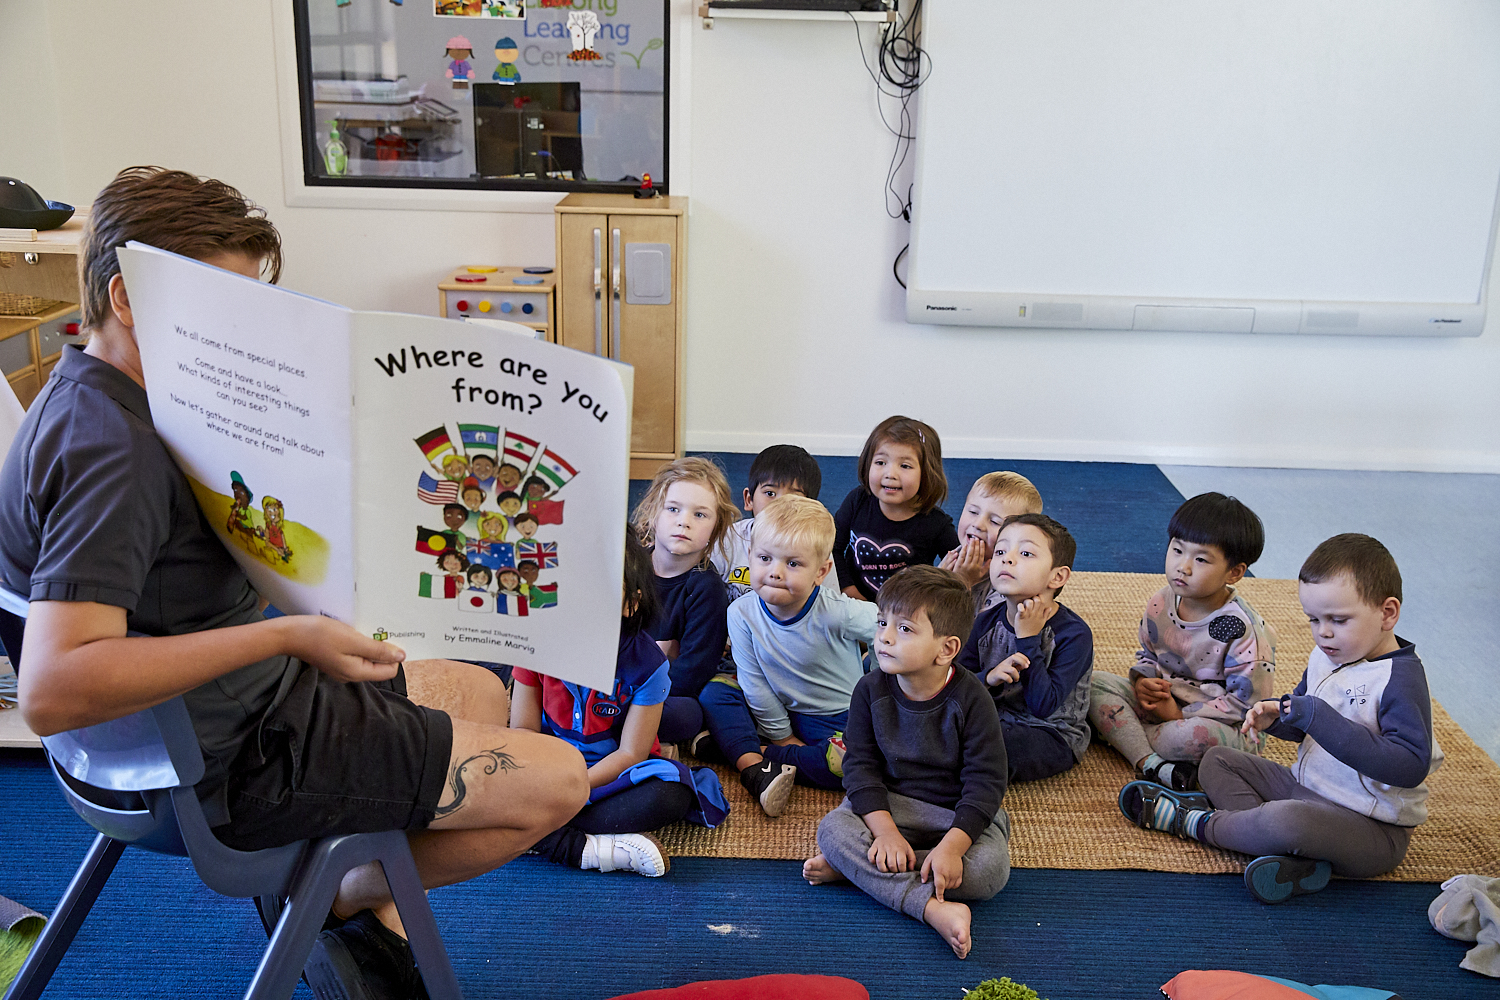 Child care educator reading to group of children in child care classroom at Papilio Dundas Valley